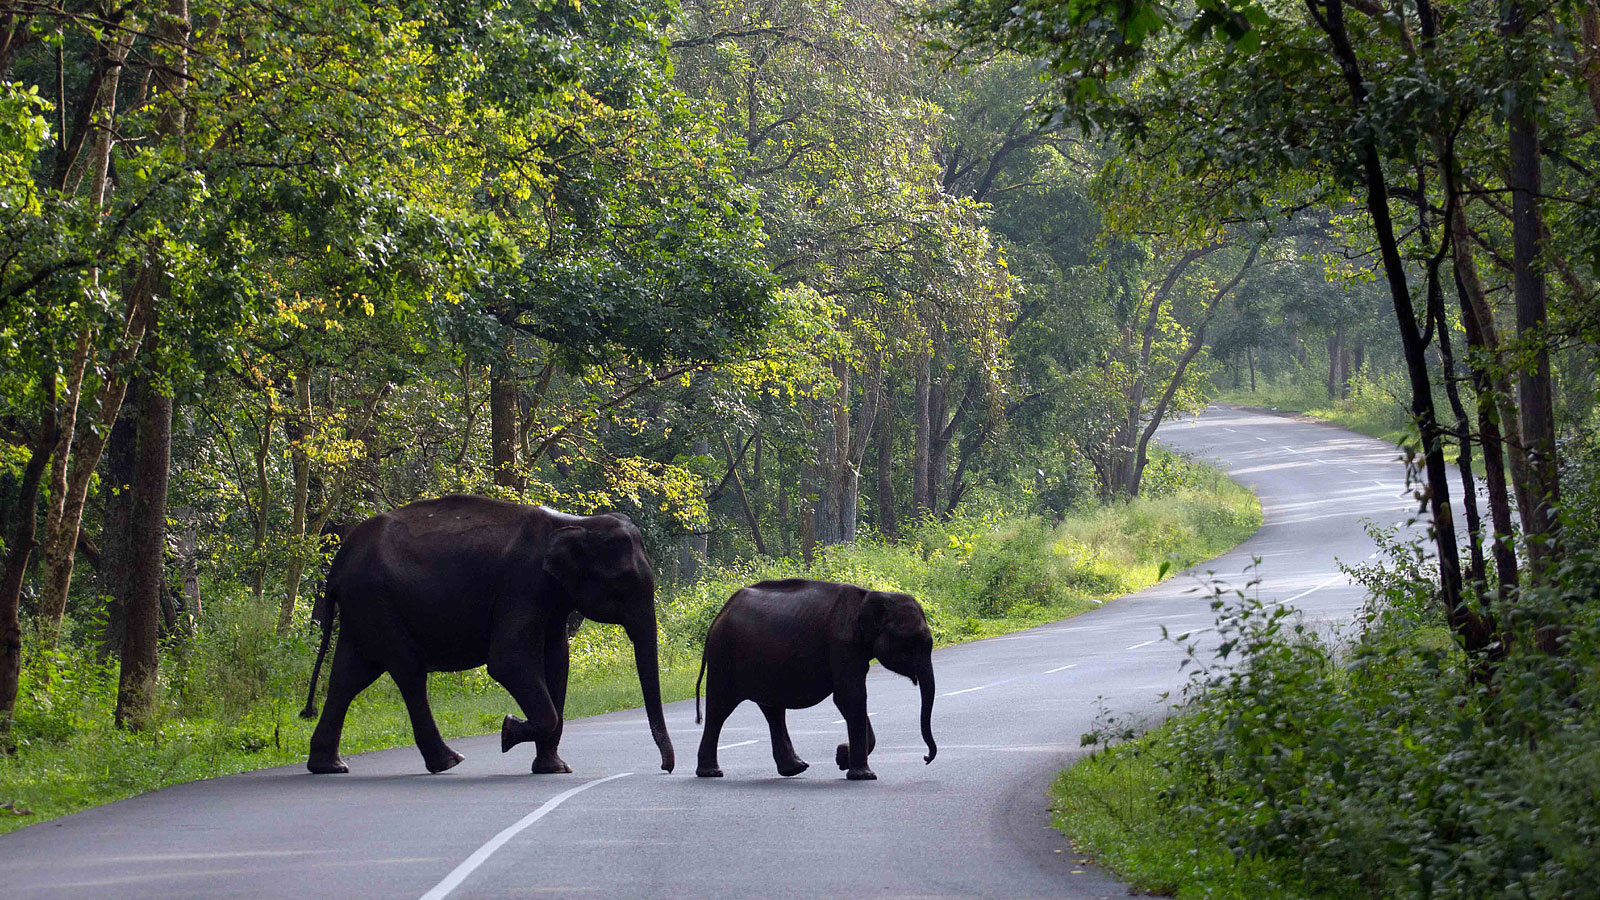 two elephants crossing a road in wayanad